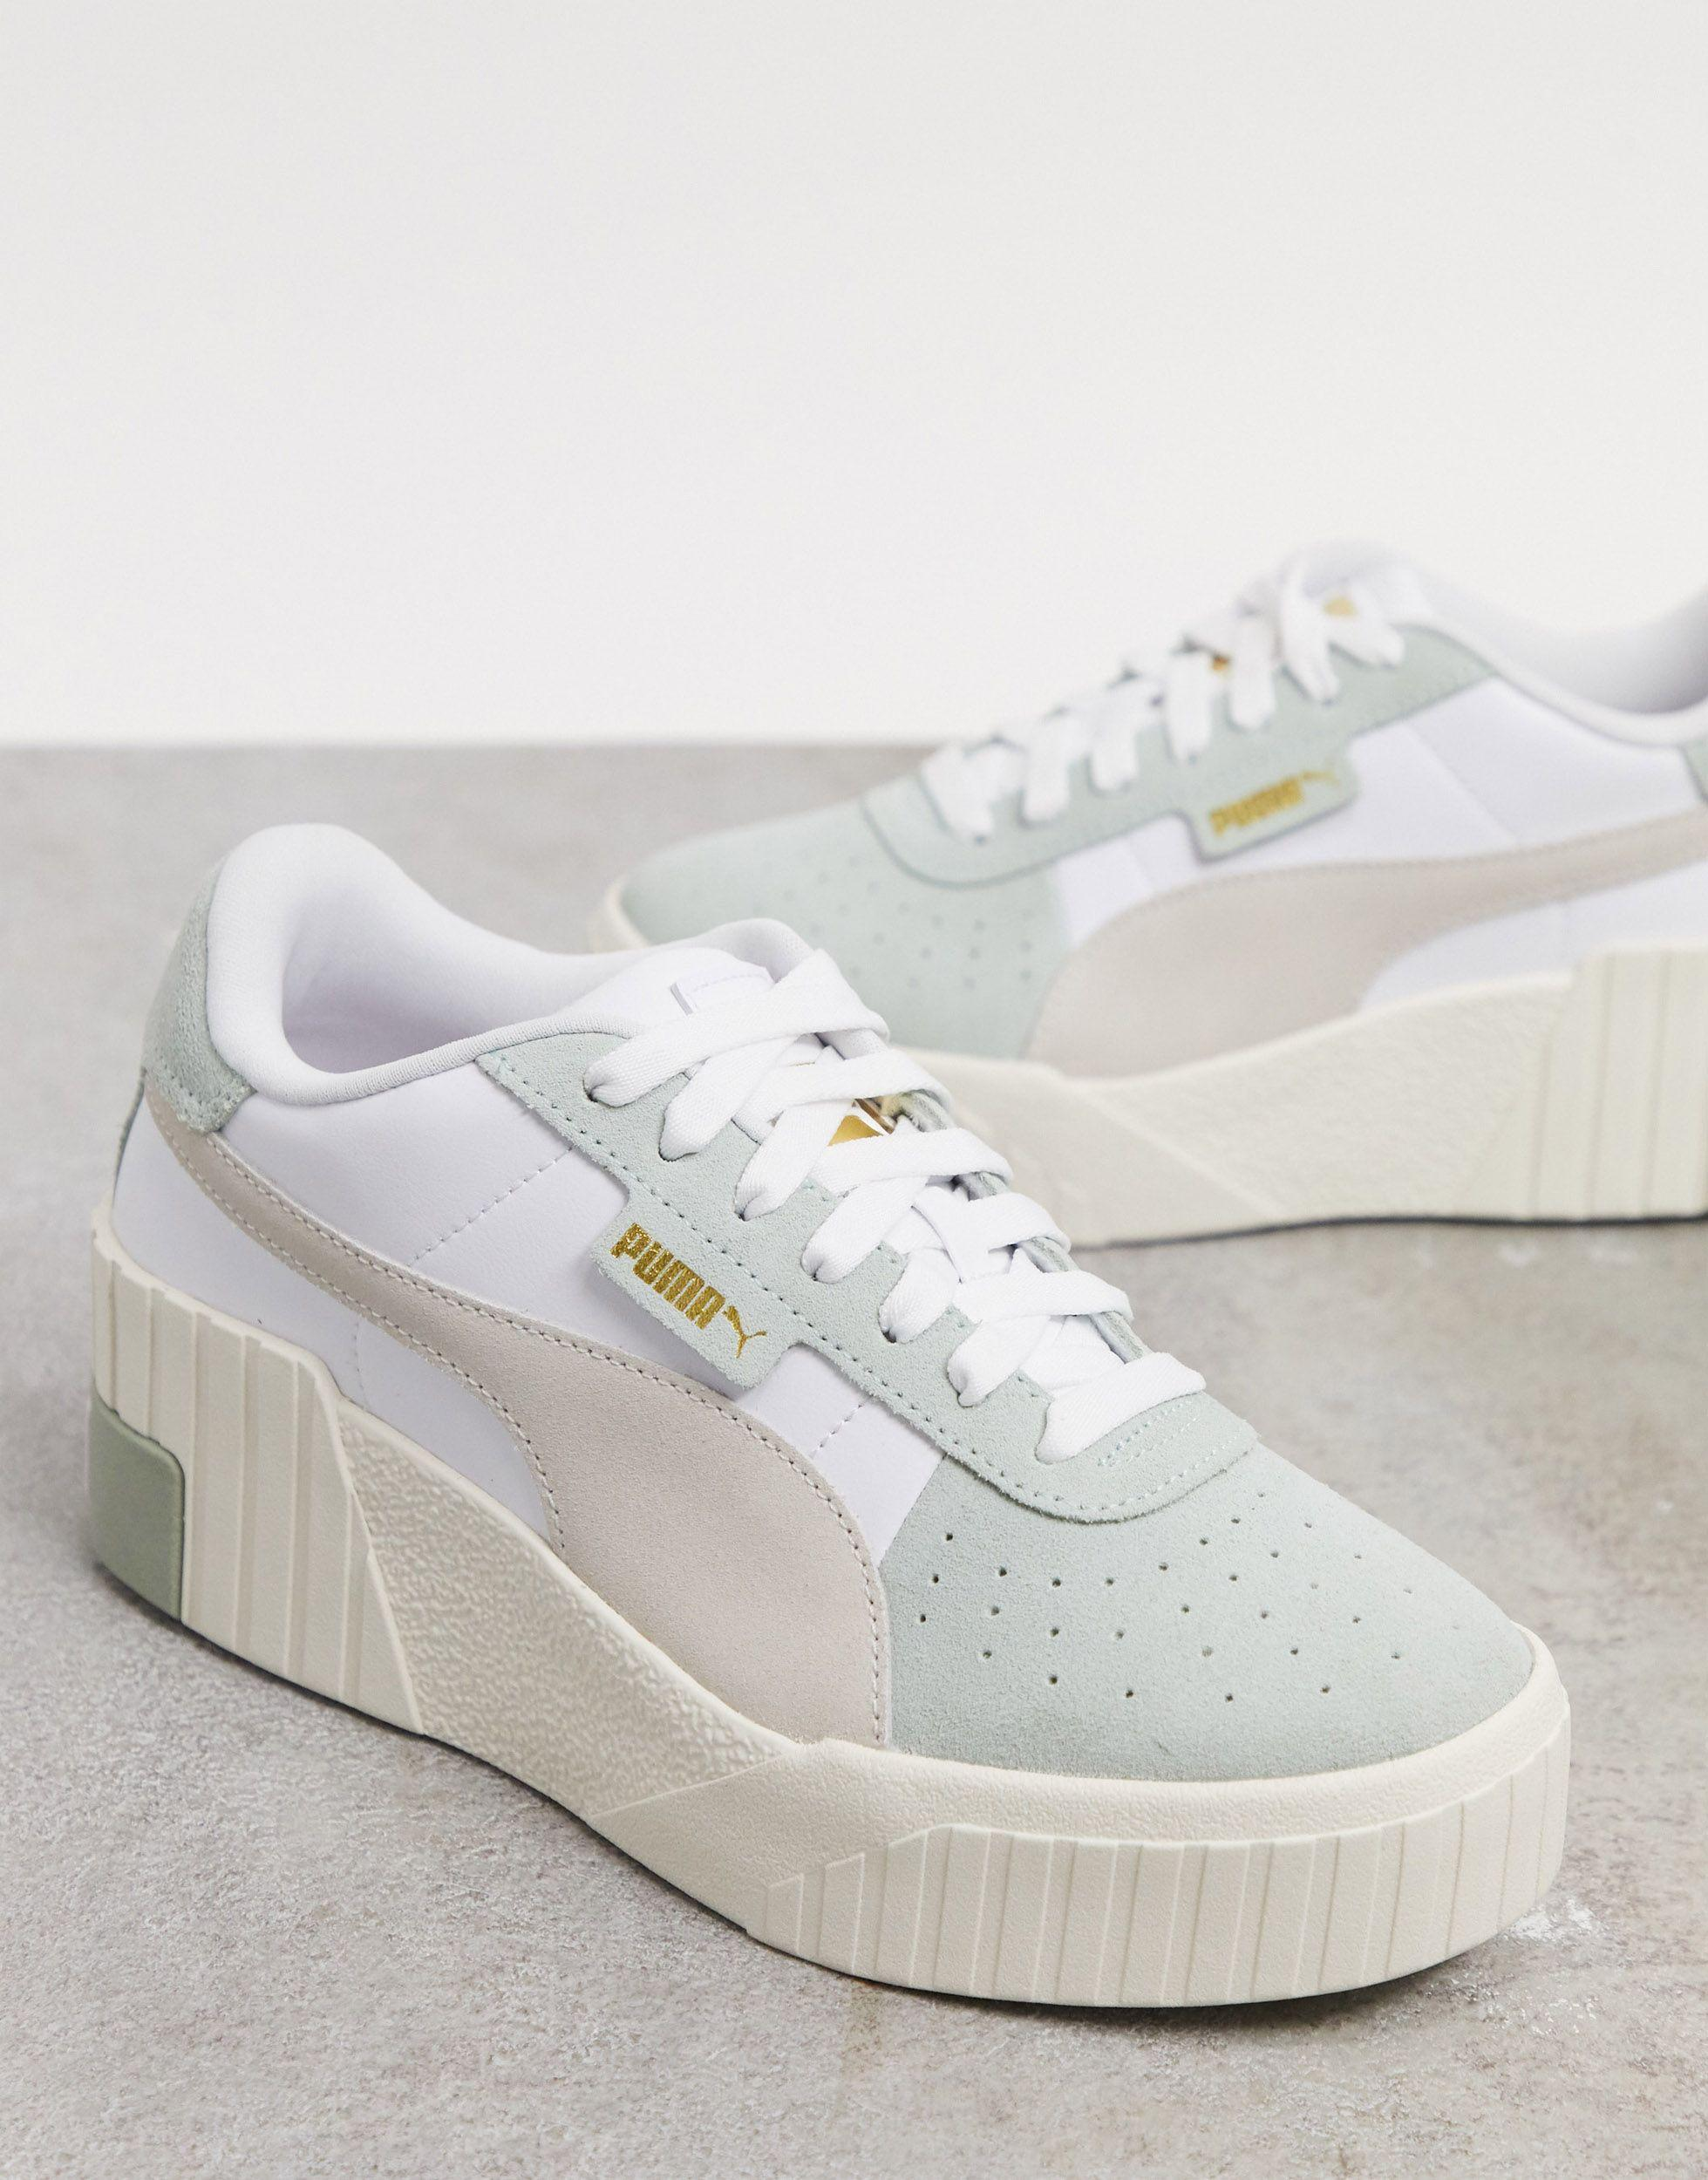 PUMA Rubber Cali Wedge Sneakers in Green - Lyst